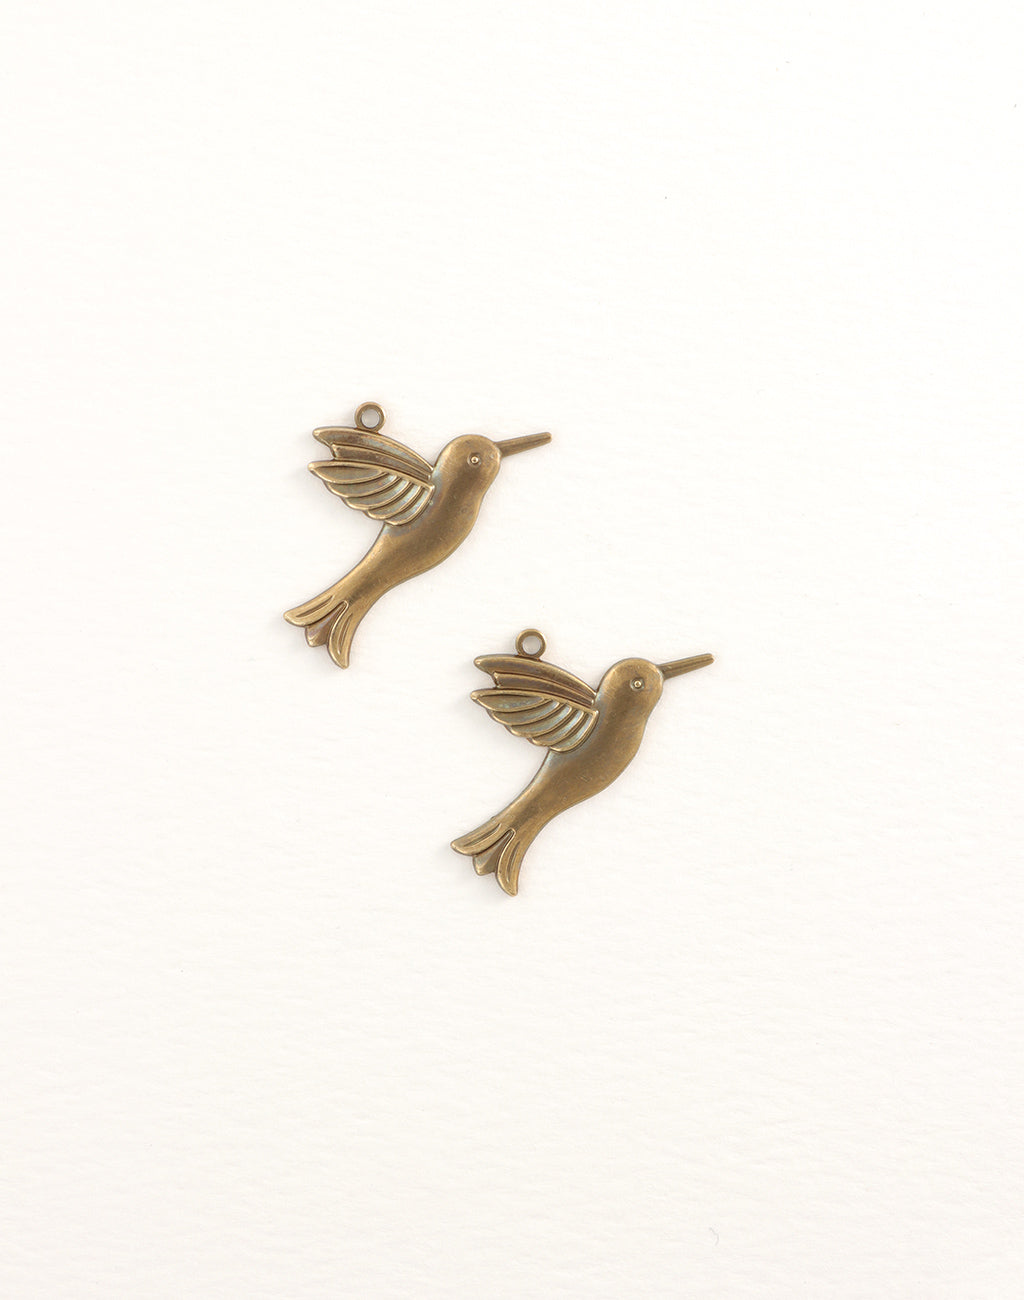 Hummingbird, 28x16mm, (2pcs)